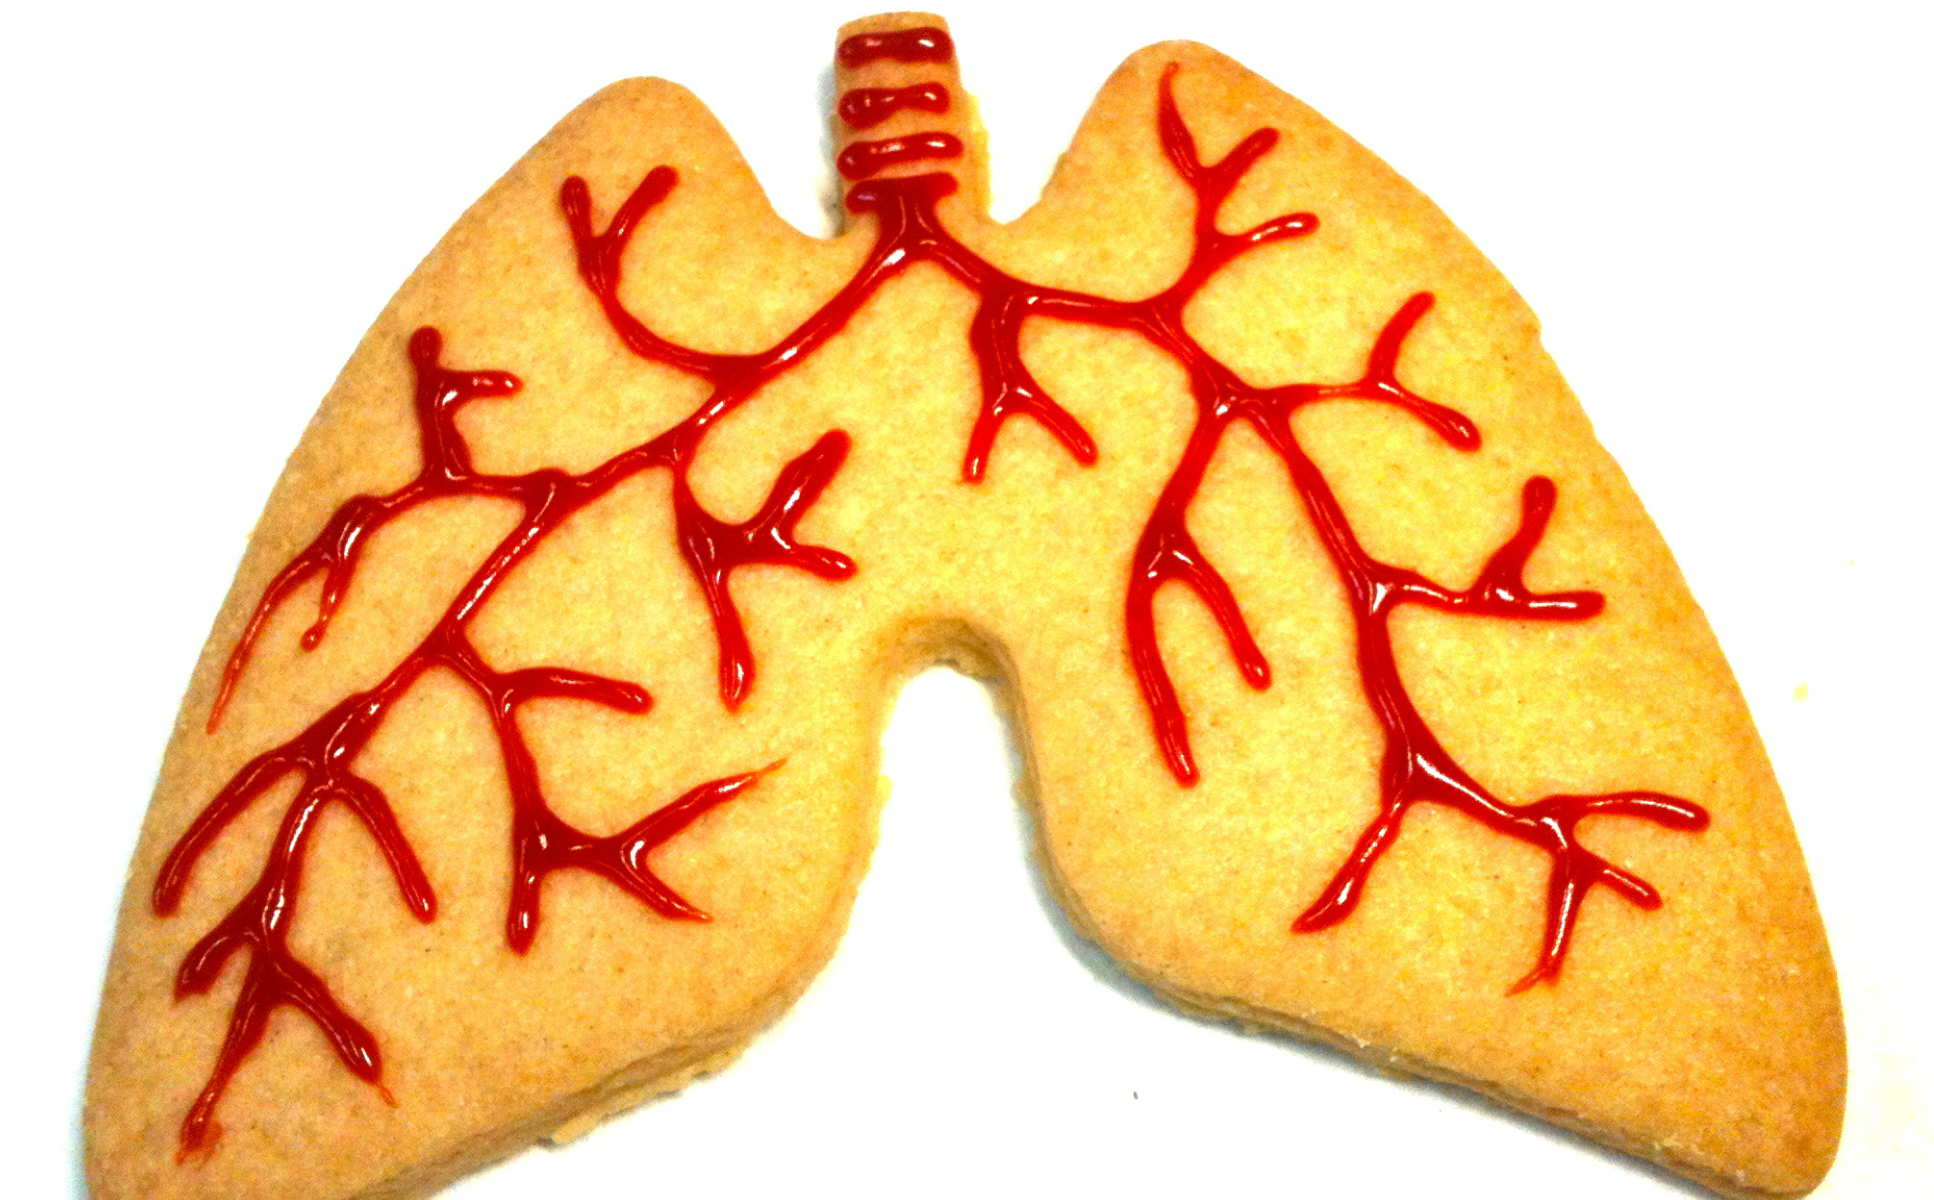 Biscuit in the shape of lungs